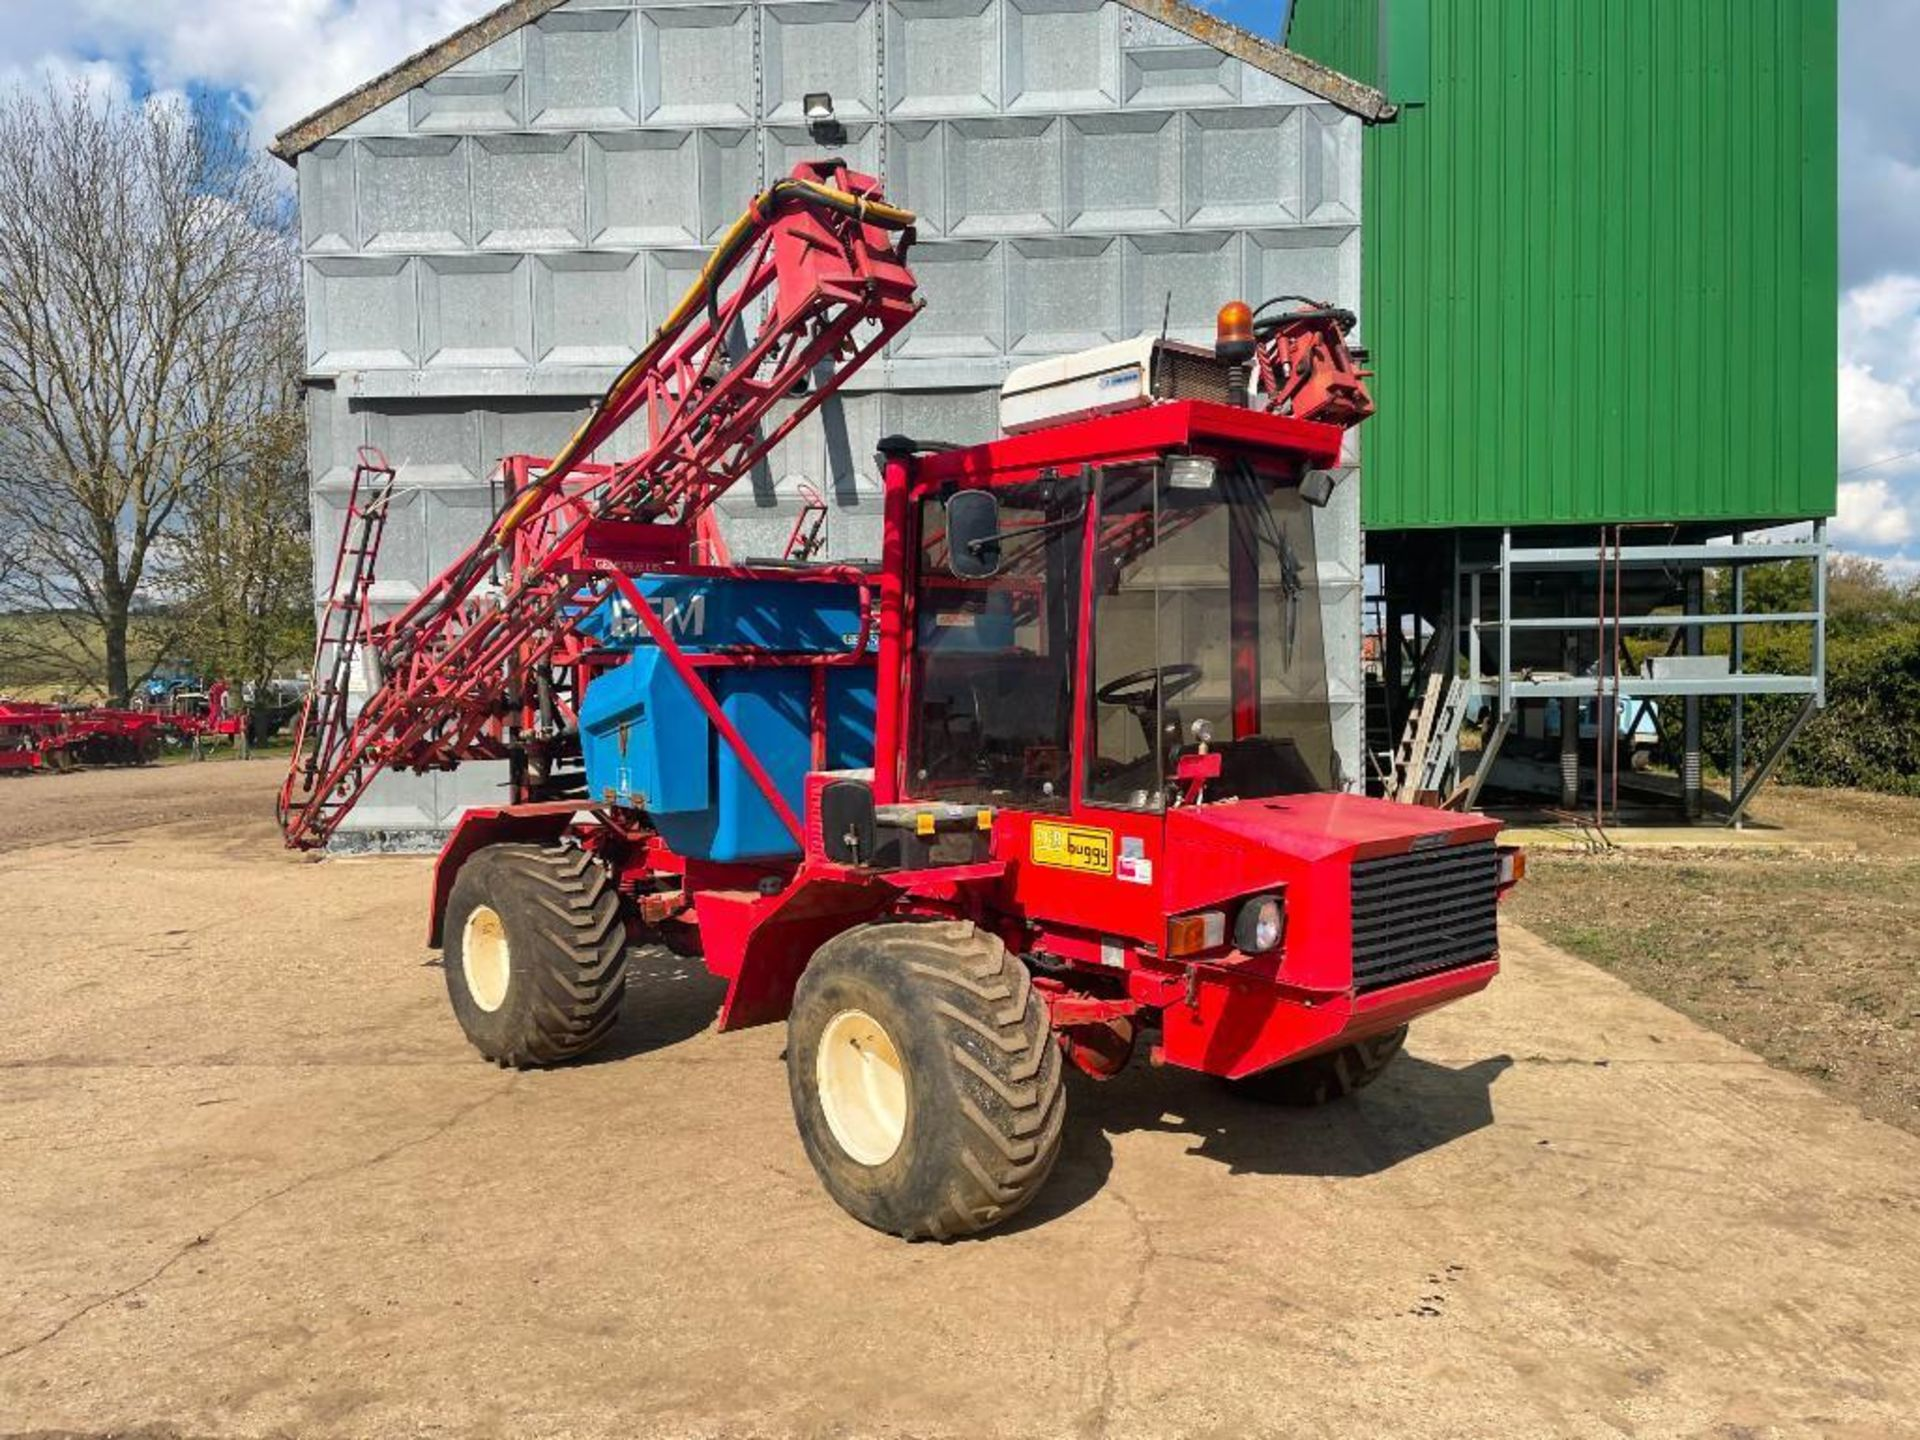 1995 Frazier Agri-Buggy SD with GEM 24m self propelled sprayer, 1500l tank on 38x20.00-16 wheels and - Image 3 of 27